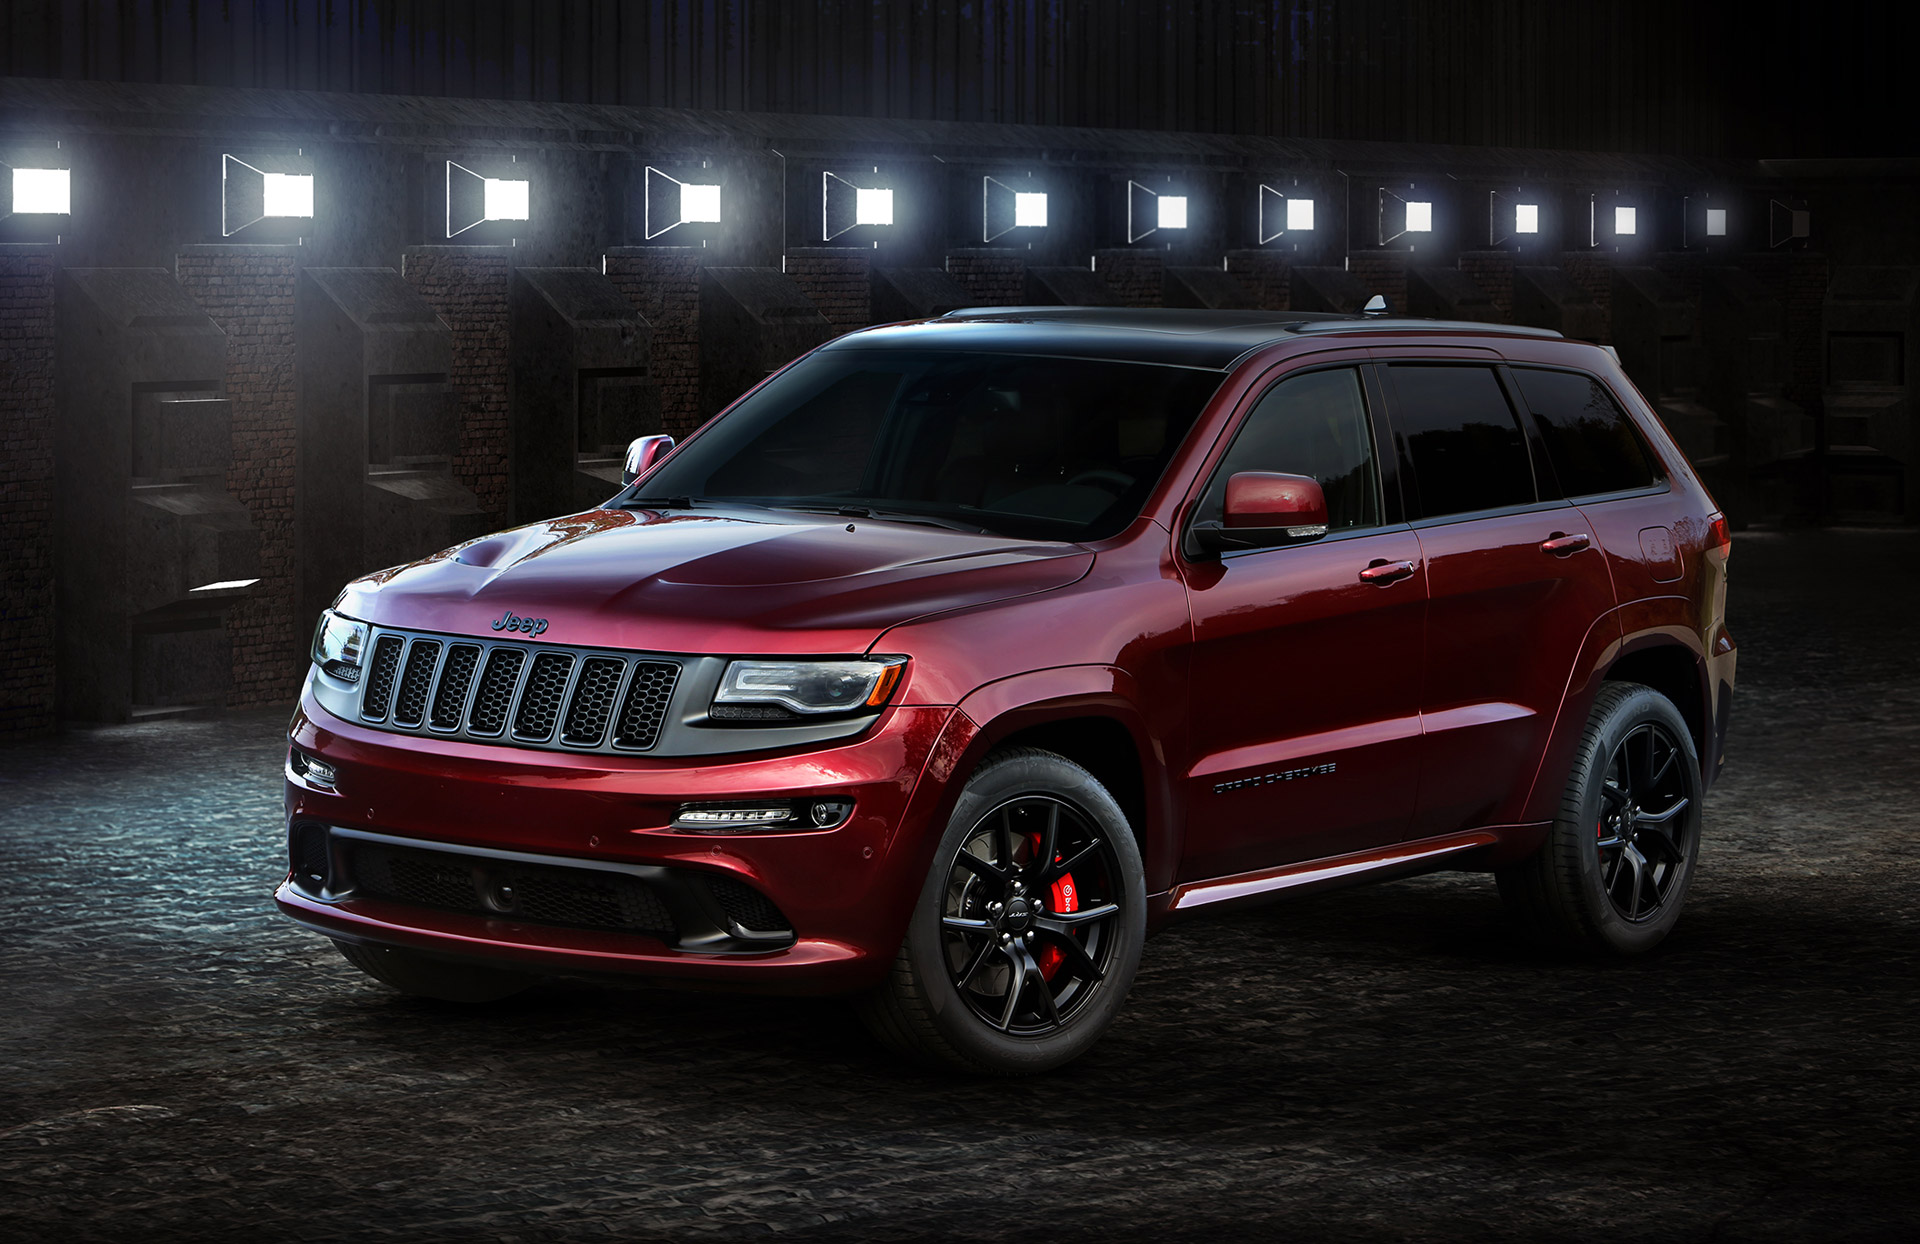 2016 Jeep Grand Cherokee Srt Wrangler Special Editions